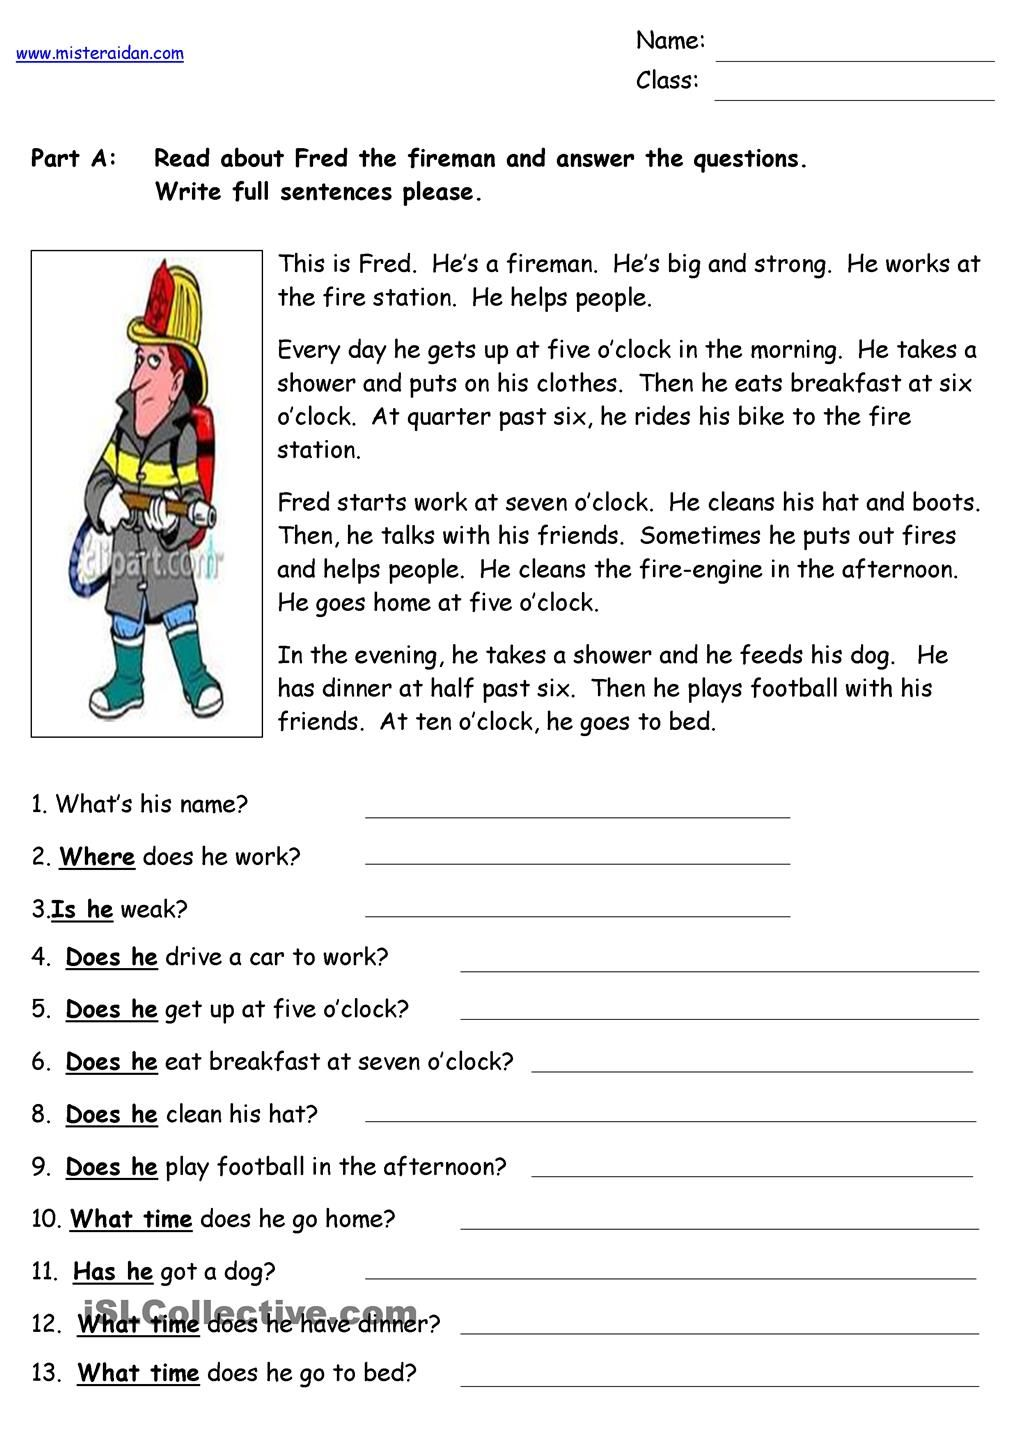 Worksheets Reading Comprehension Worksheets College fred the fireman reading comprehension school pinterest worksheet free esl printable worksheets made by teachers